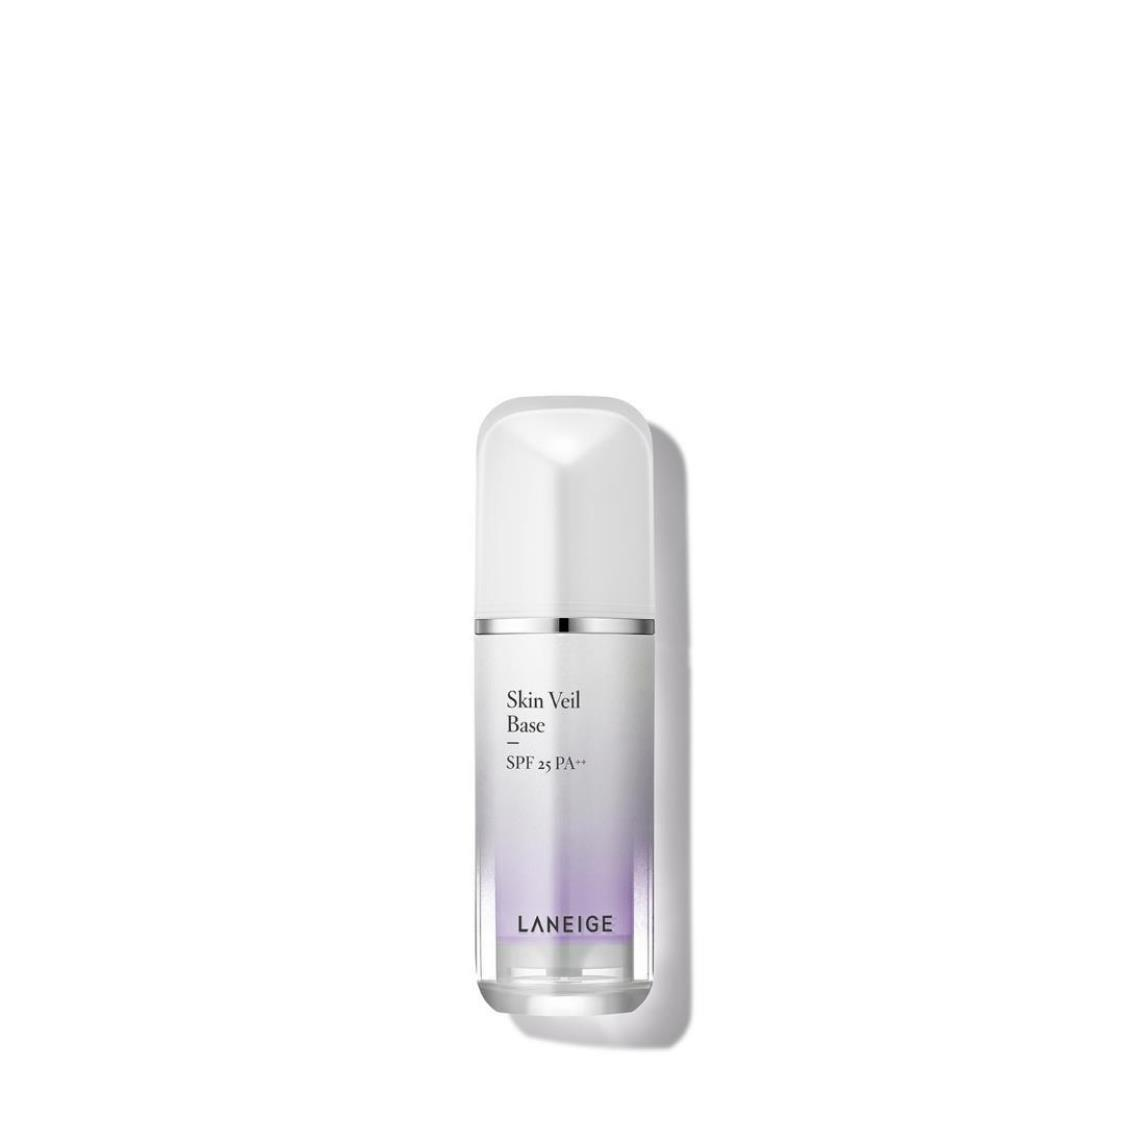 Skin Veil Base No40 Pure Violet SPF 23 30ml